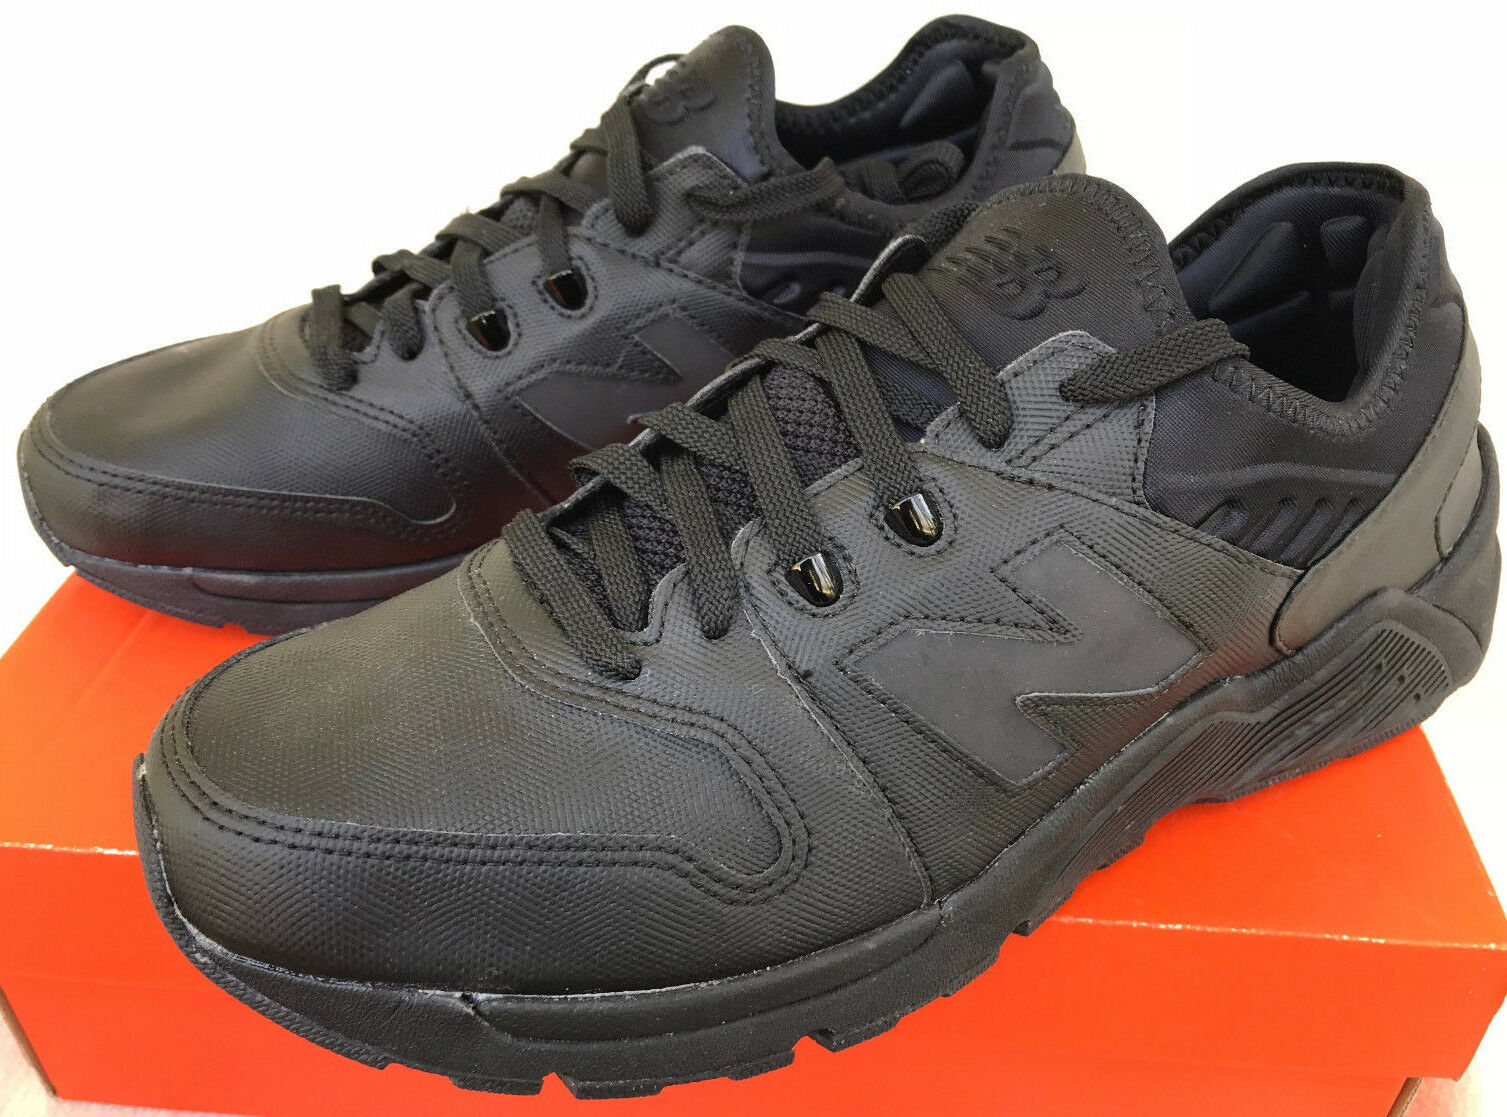 New IMEVA Balance ML009BB Triple Black IMEVA New HR Sole Comfort Walking Shoes Men's 10 478ebc